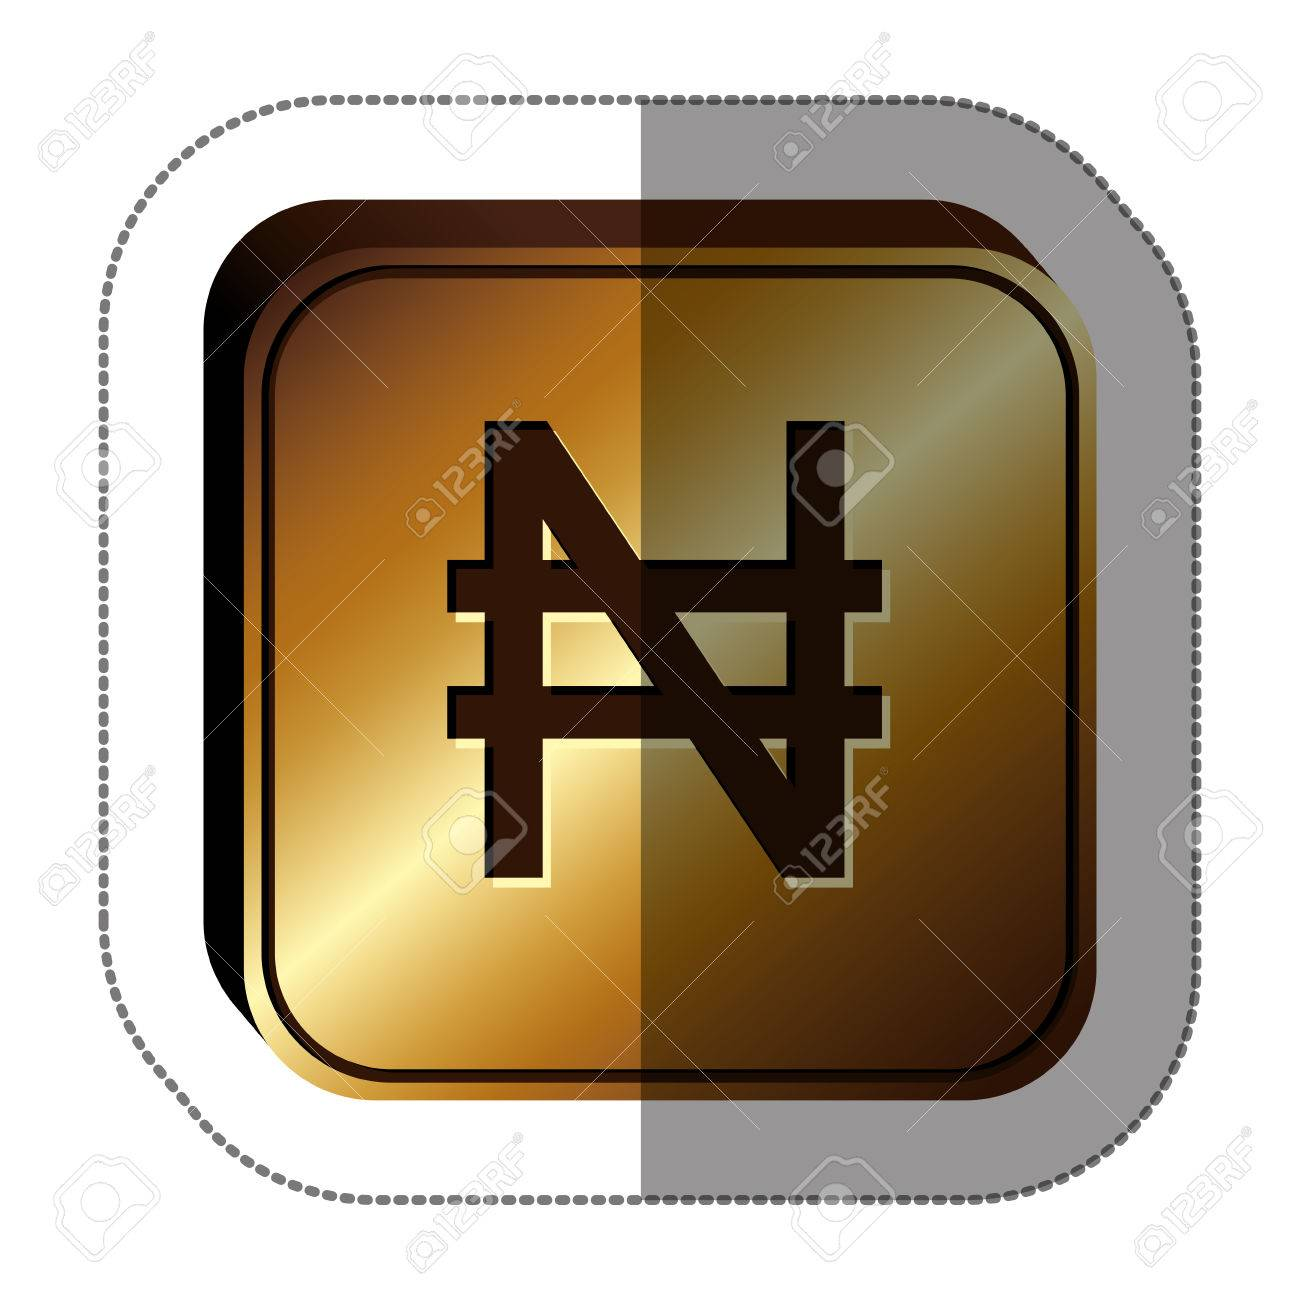 Sticker golden square with currency symbol of nigerian naira sticker golden square with currency symbol of nigerian naira vector illustration stock vector 70587358 buycottarizona Images